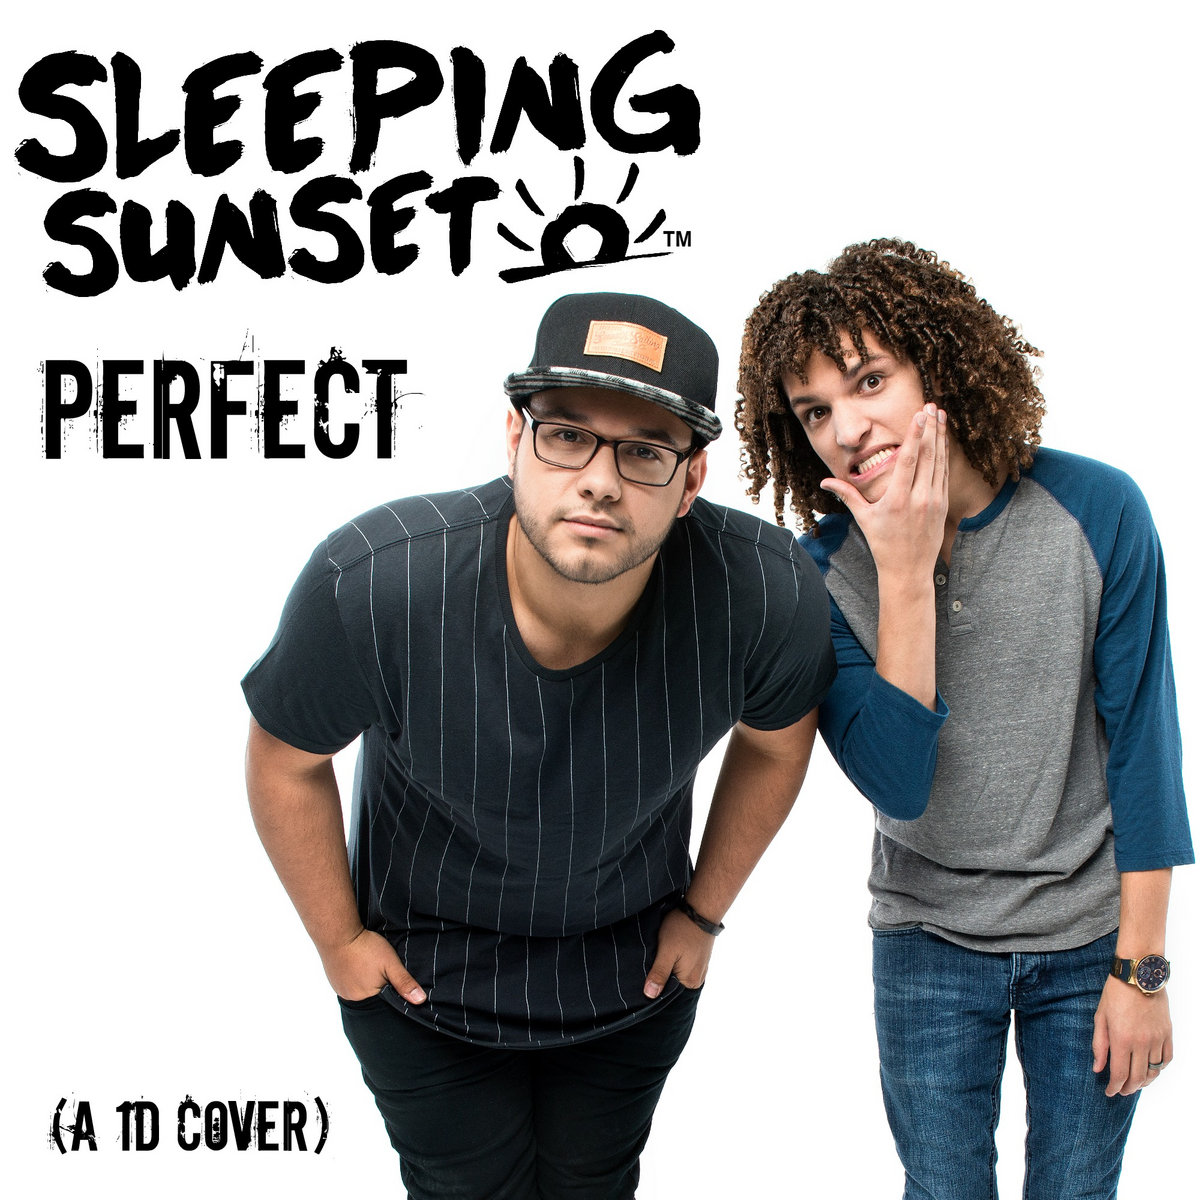 Perfect (A 1D Cover) by Sleeping Sunset